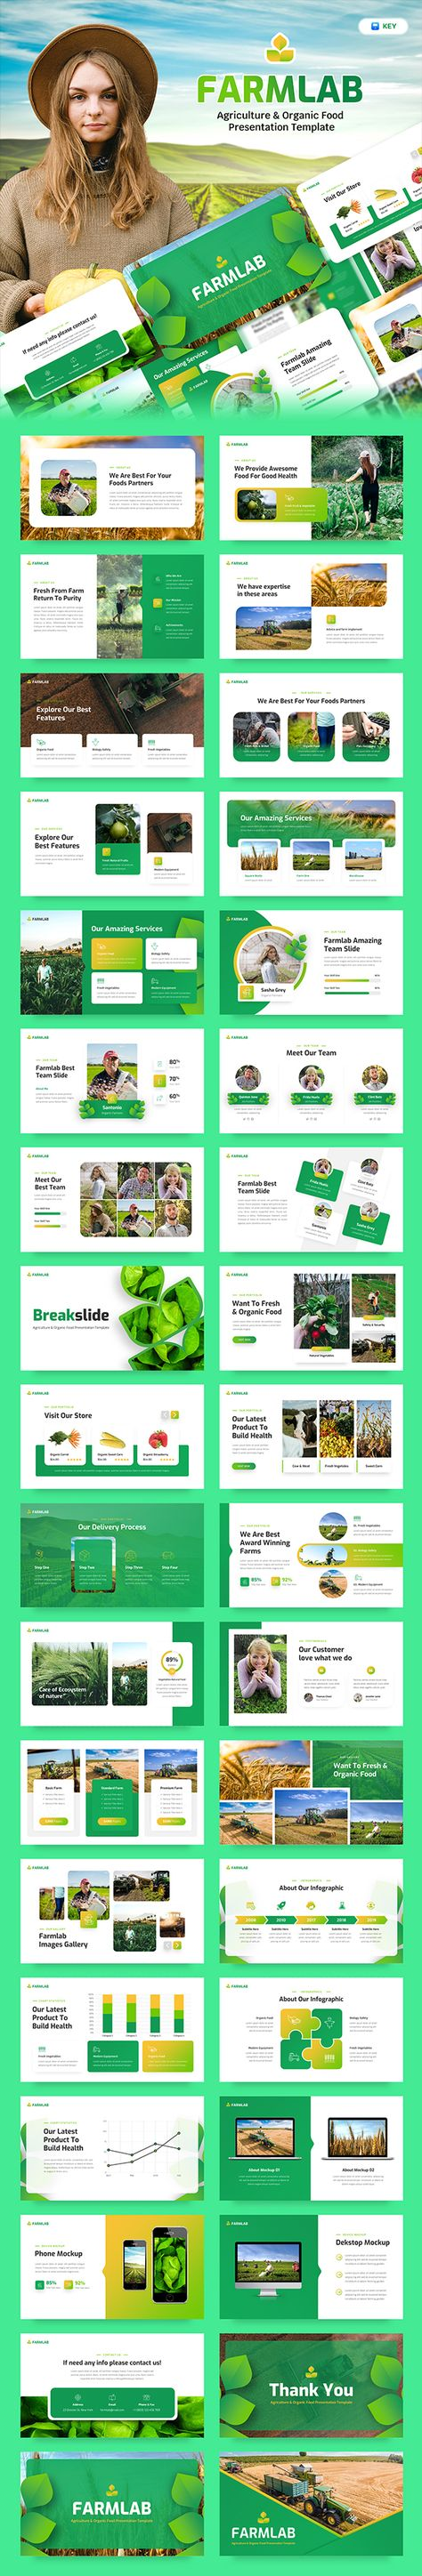 Farmlab - Agriculture & Organic Food Keynote Presentation Template